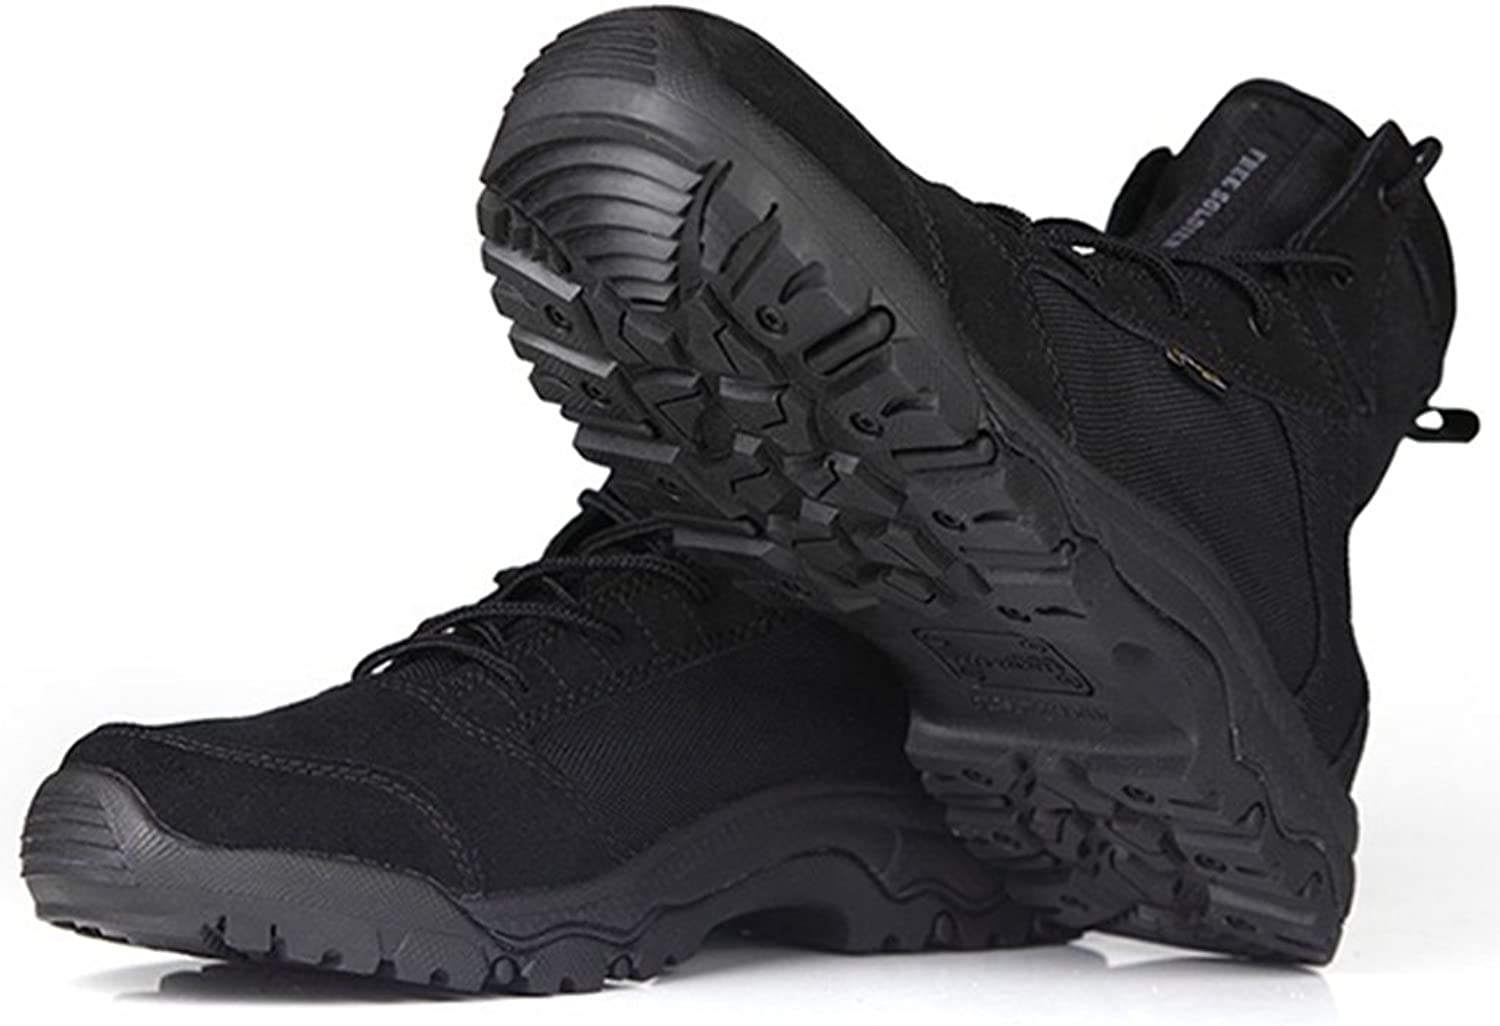 Bergort Climbing Boots Outdoor Sports Tactical shoes Mens Army Sneaker